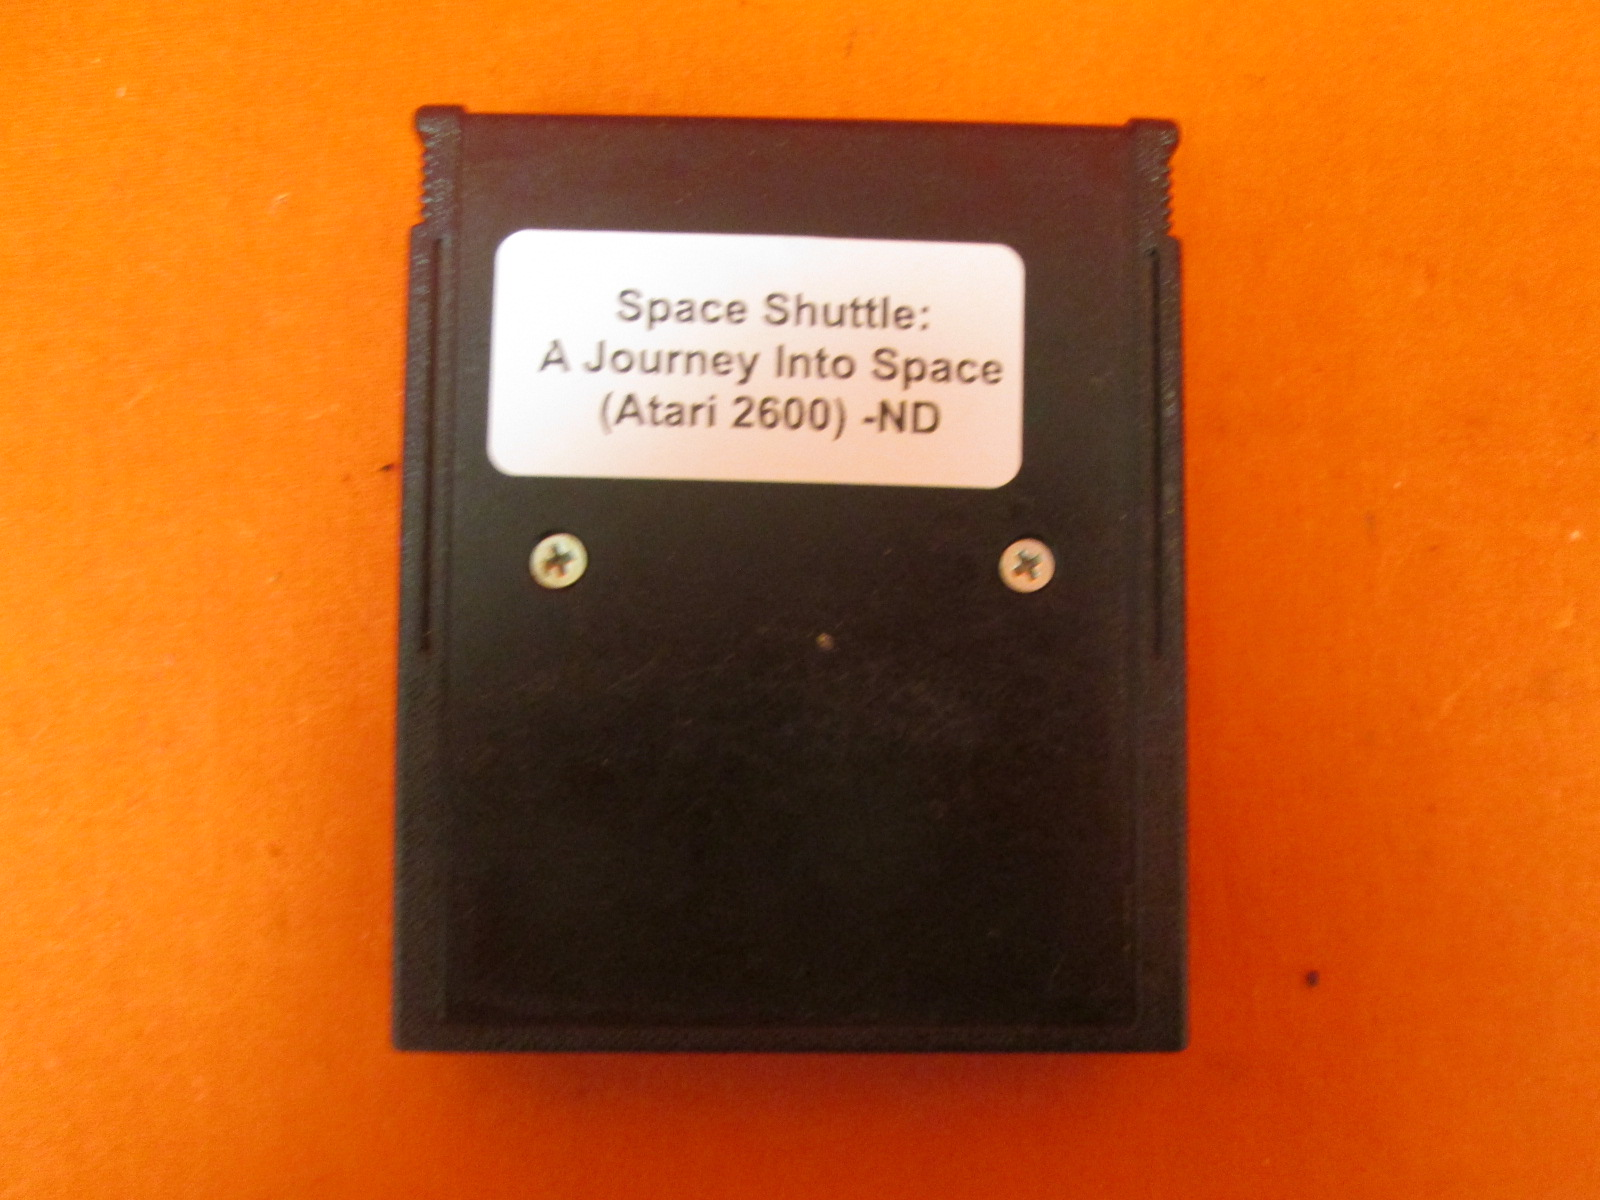 Image 1 of Space Shuttle For Atari 2600